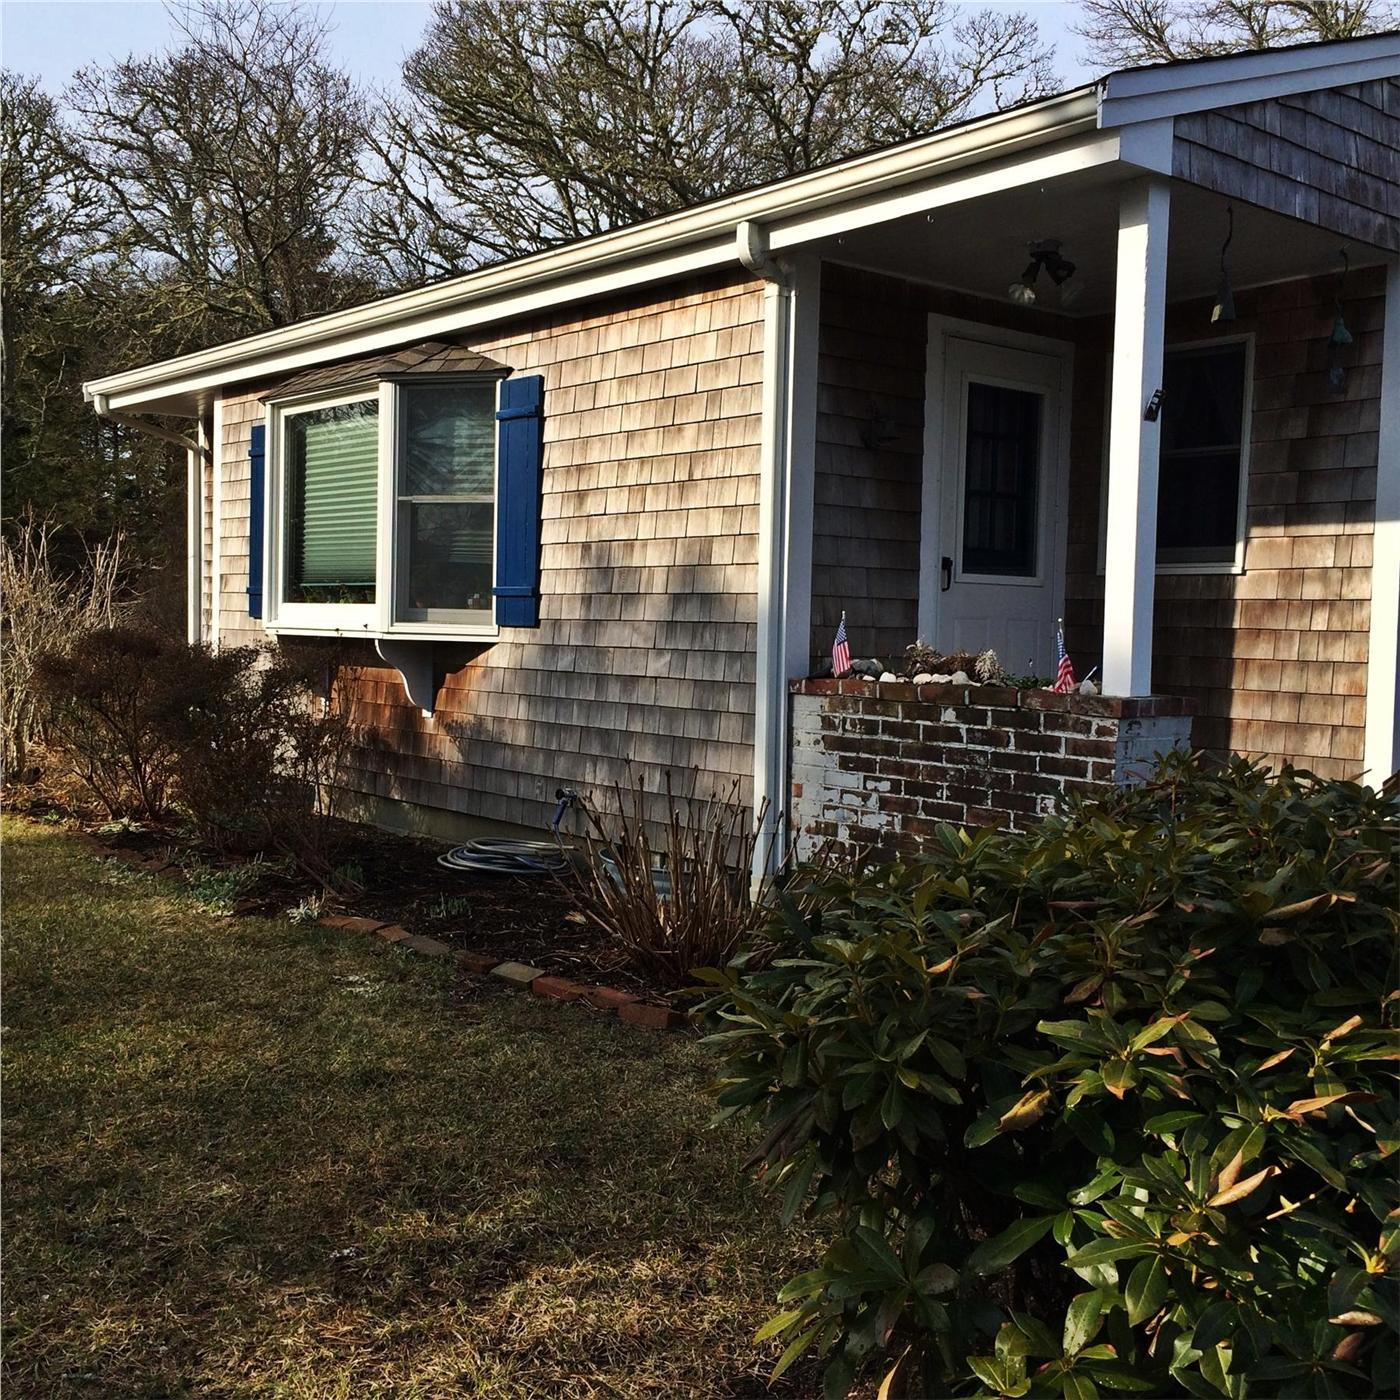 Chatham Vacation Rental Home In Cape Cod MA 02633